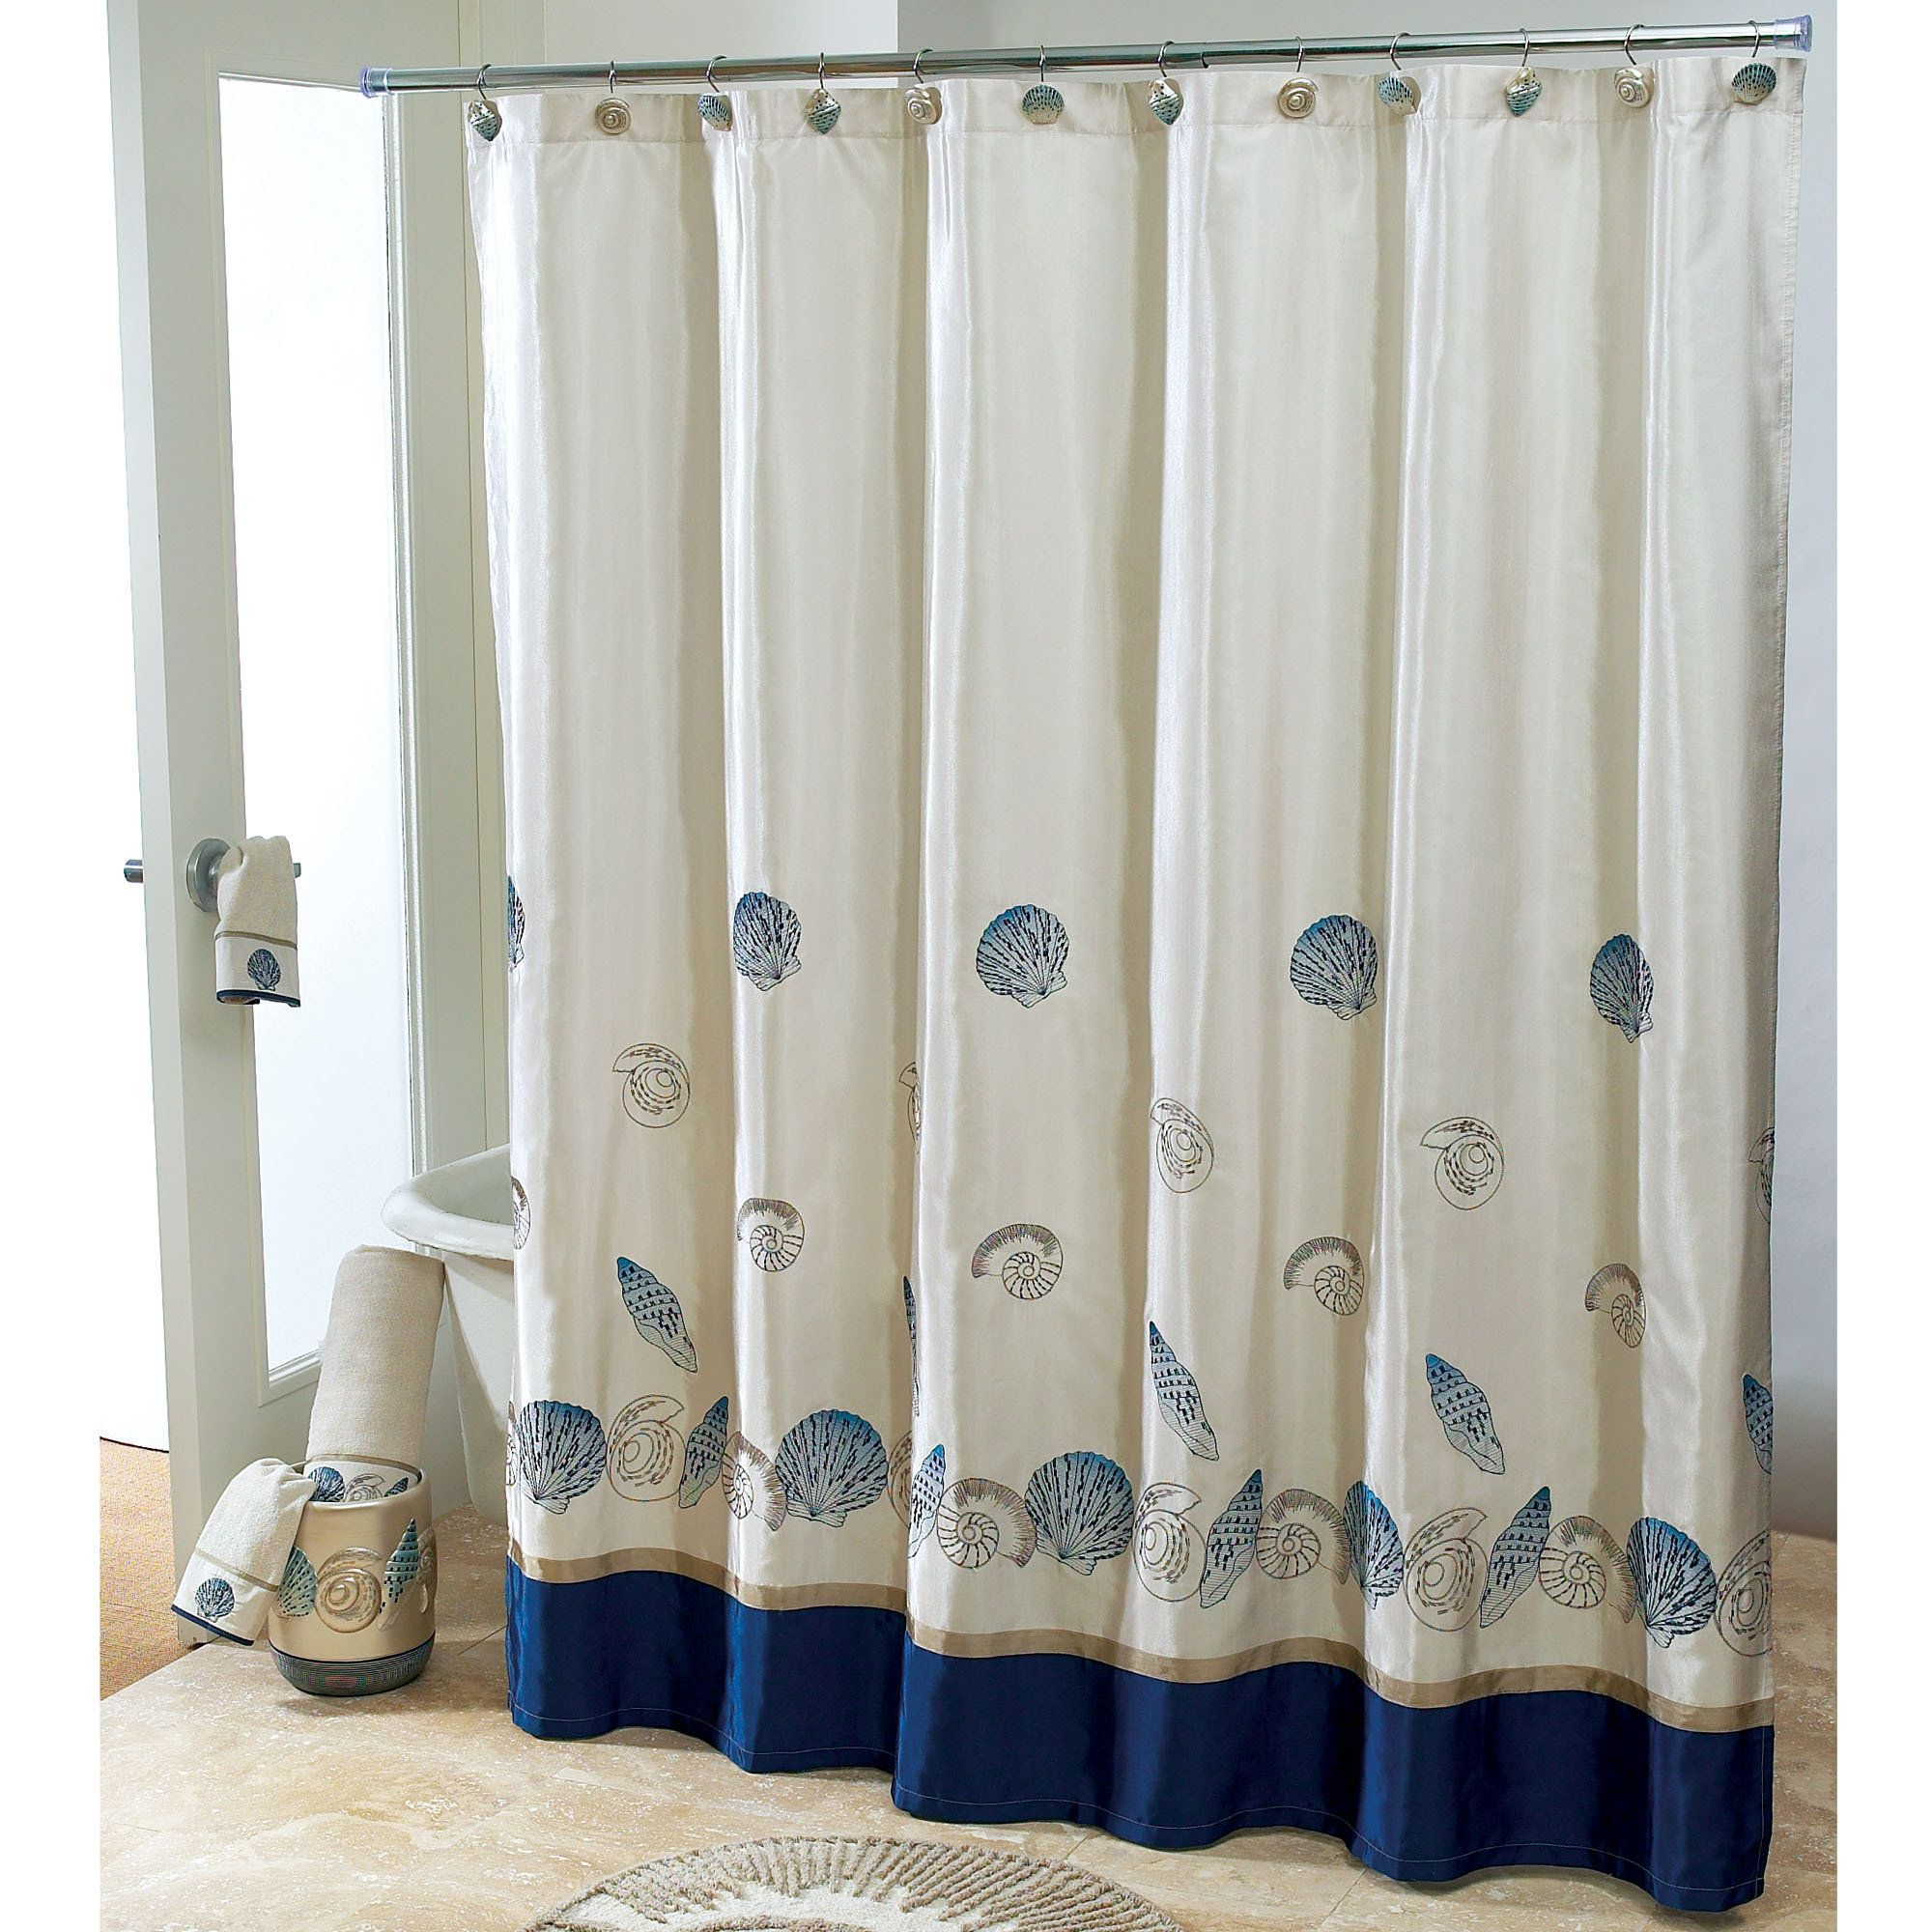 Choosing The Best Shower Curtain, Check It Out! | Curtain designs ...